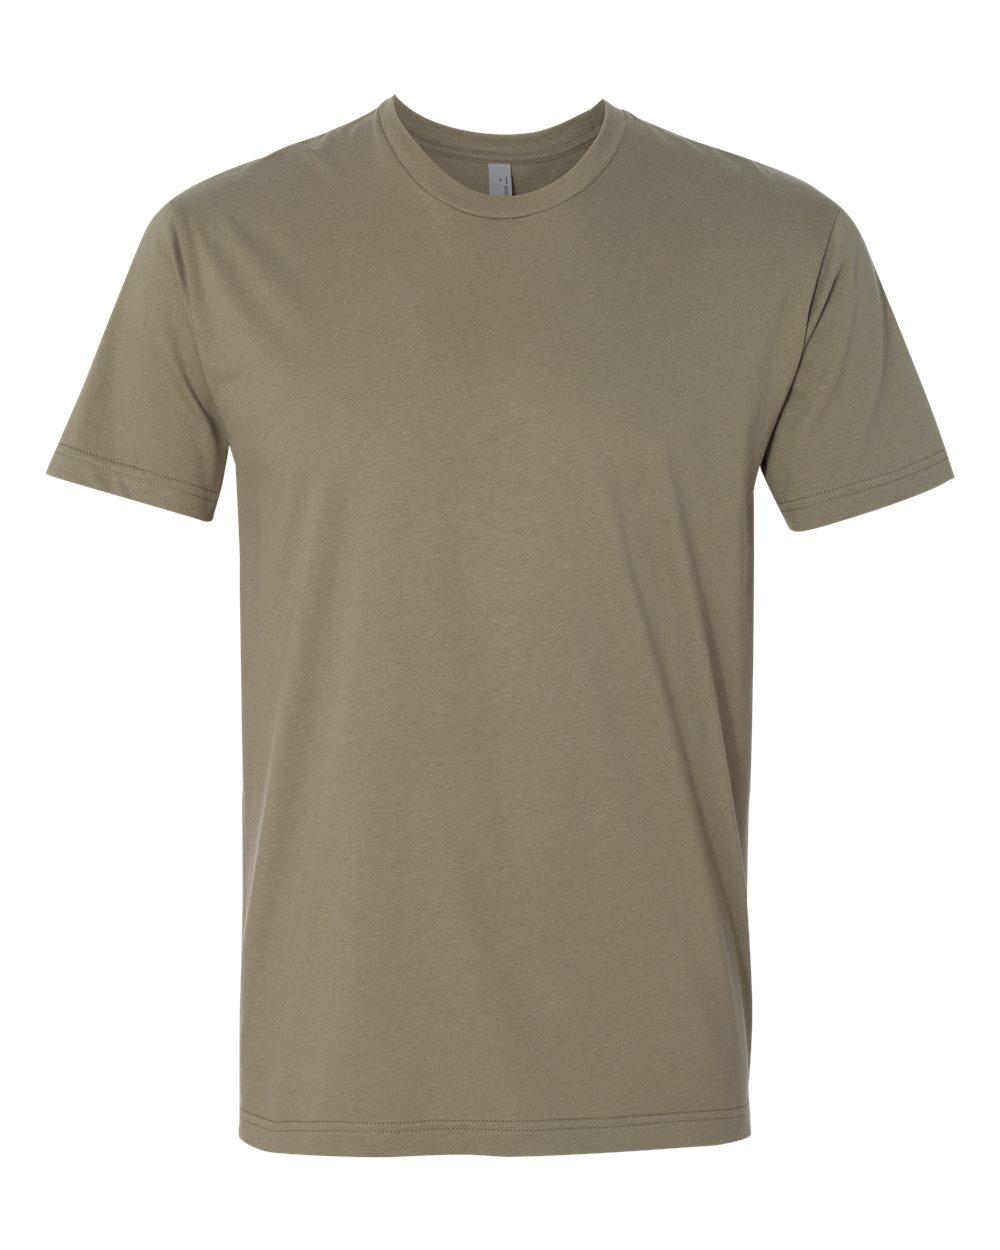 Next_Level_3600_Light_Olive_Front_High.jpg